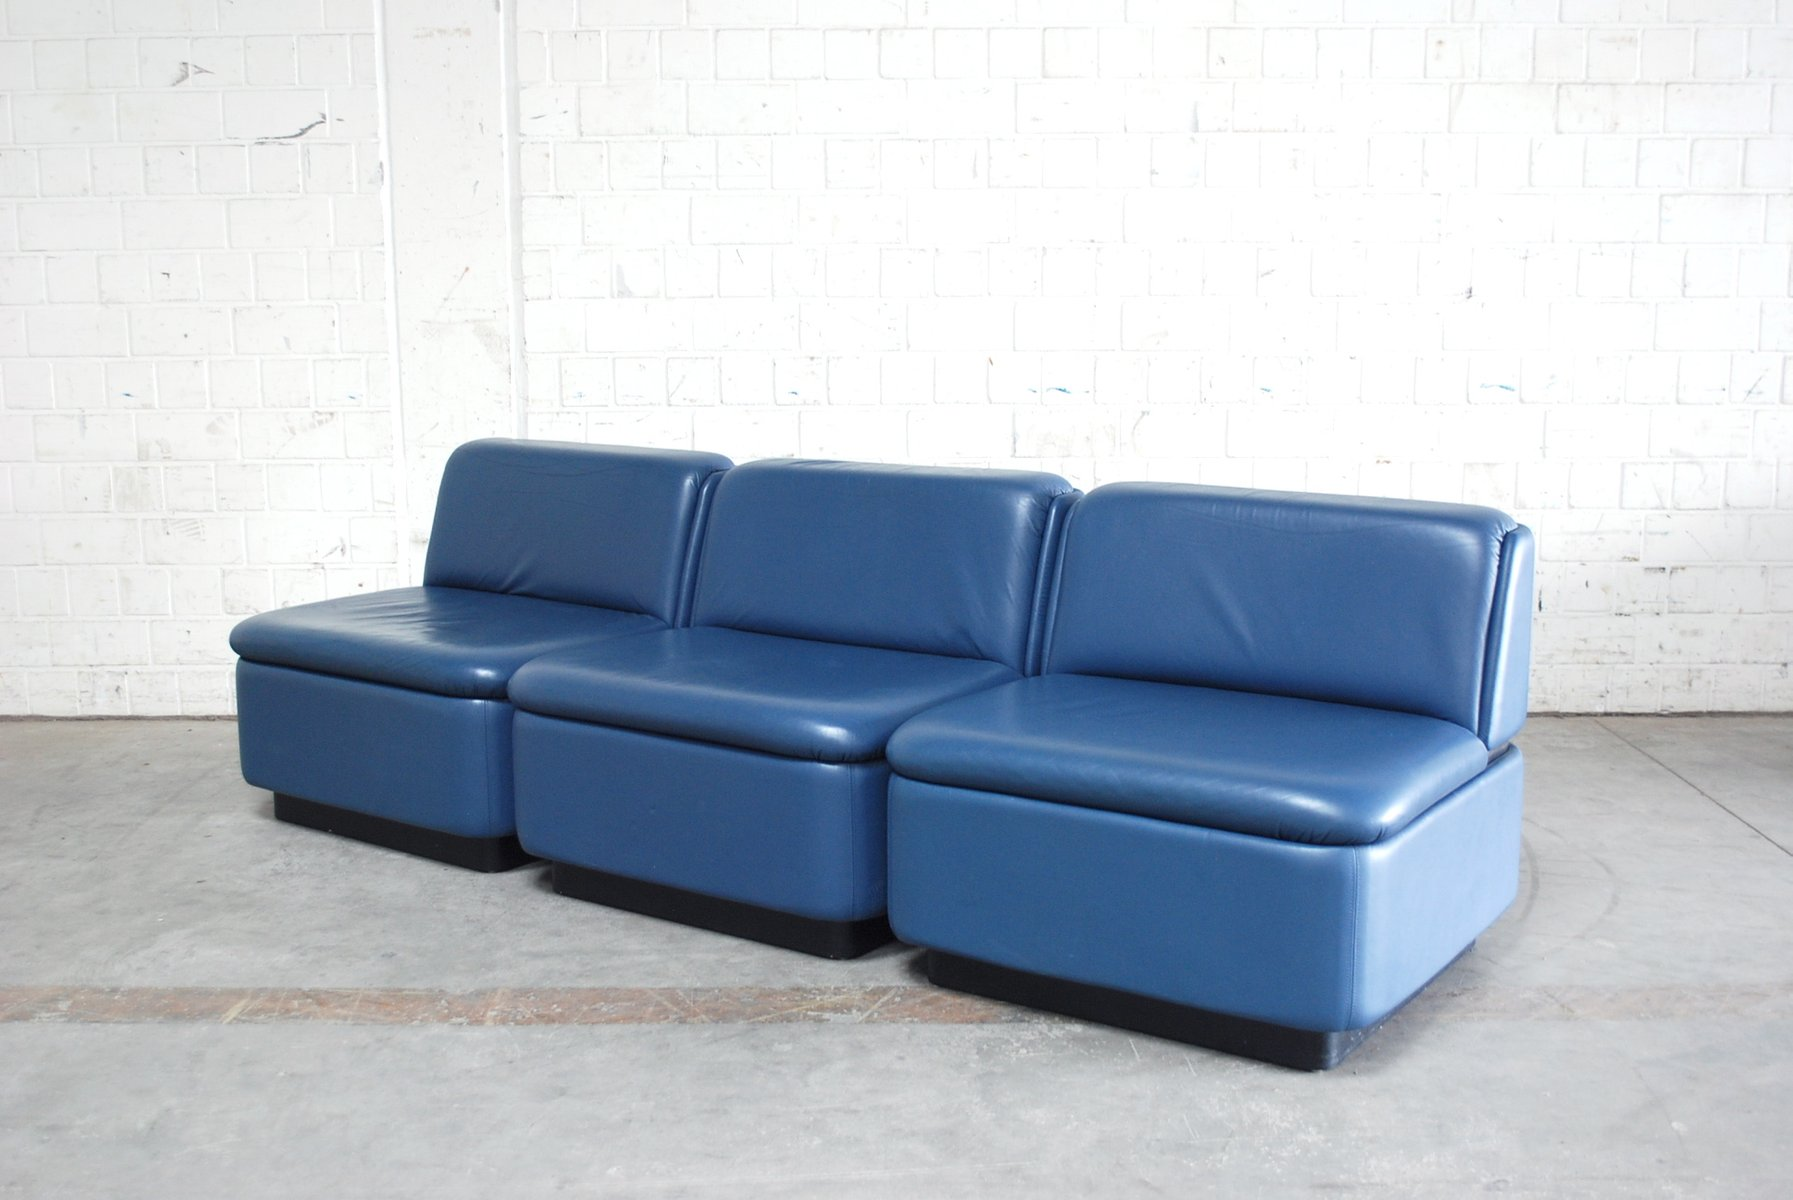 Vintage modular blue leather sofa 1979 for sale at pamono for Blue leather sofa